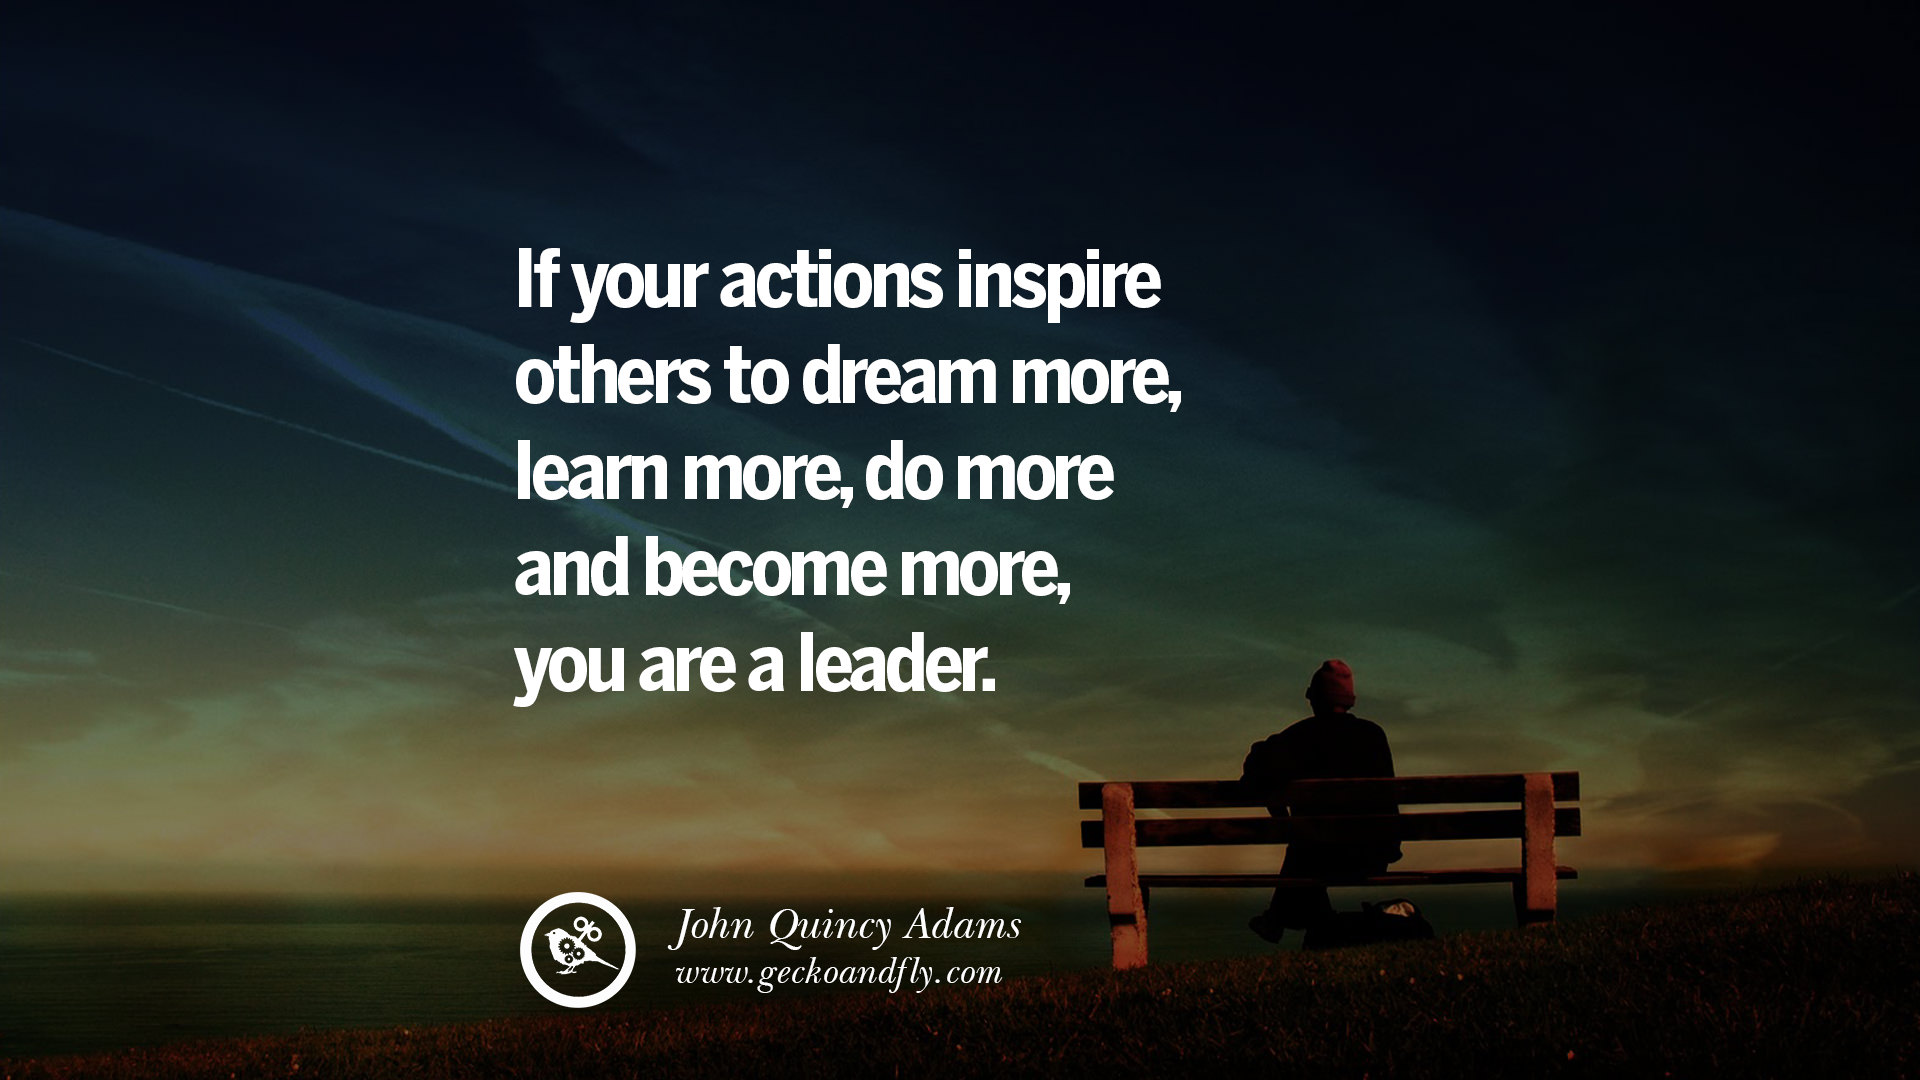 Leaders Quotes 18 Uplifting And Motivational Quotes On Management Leadership